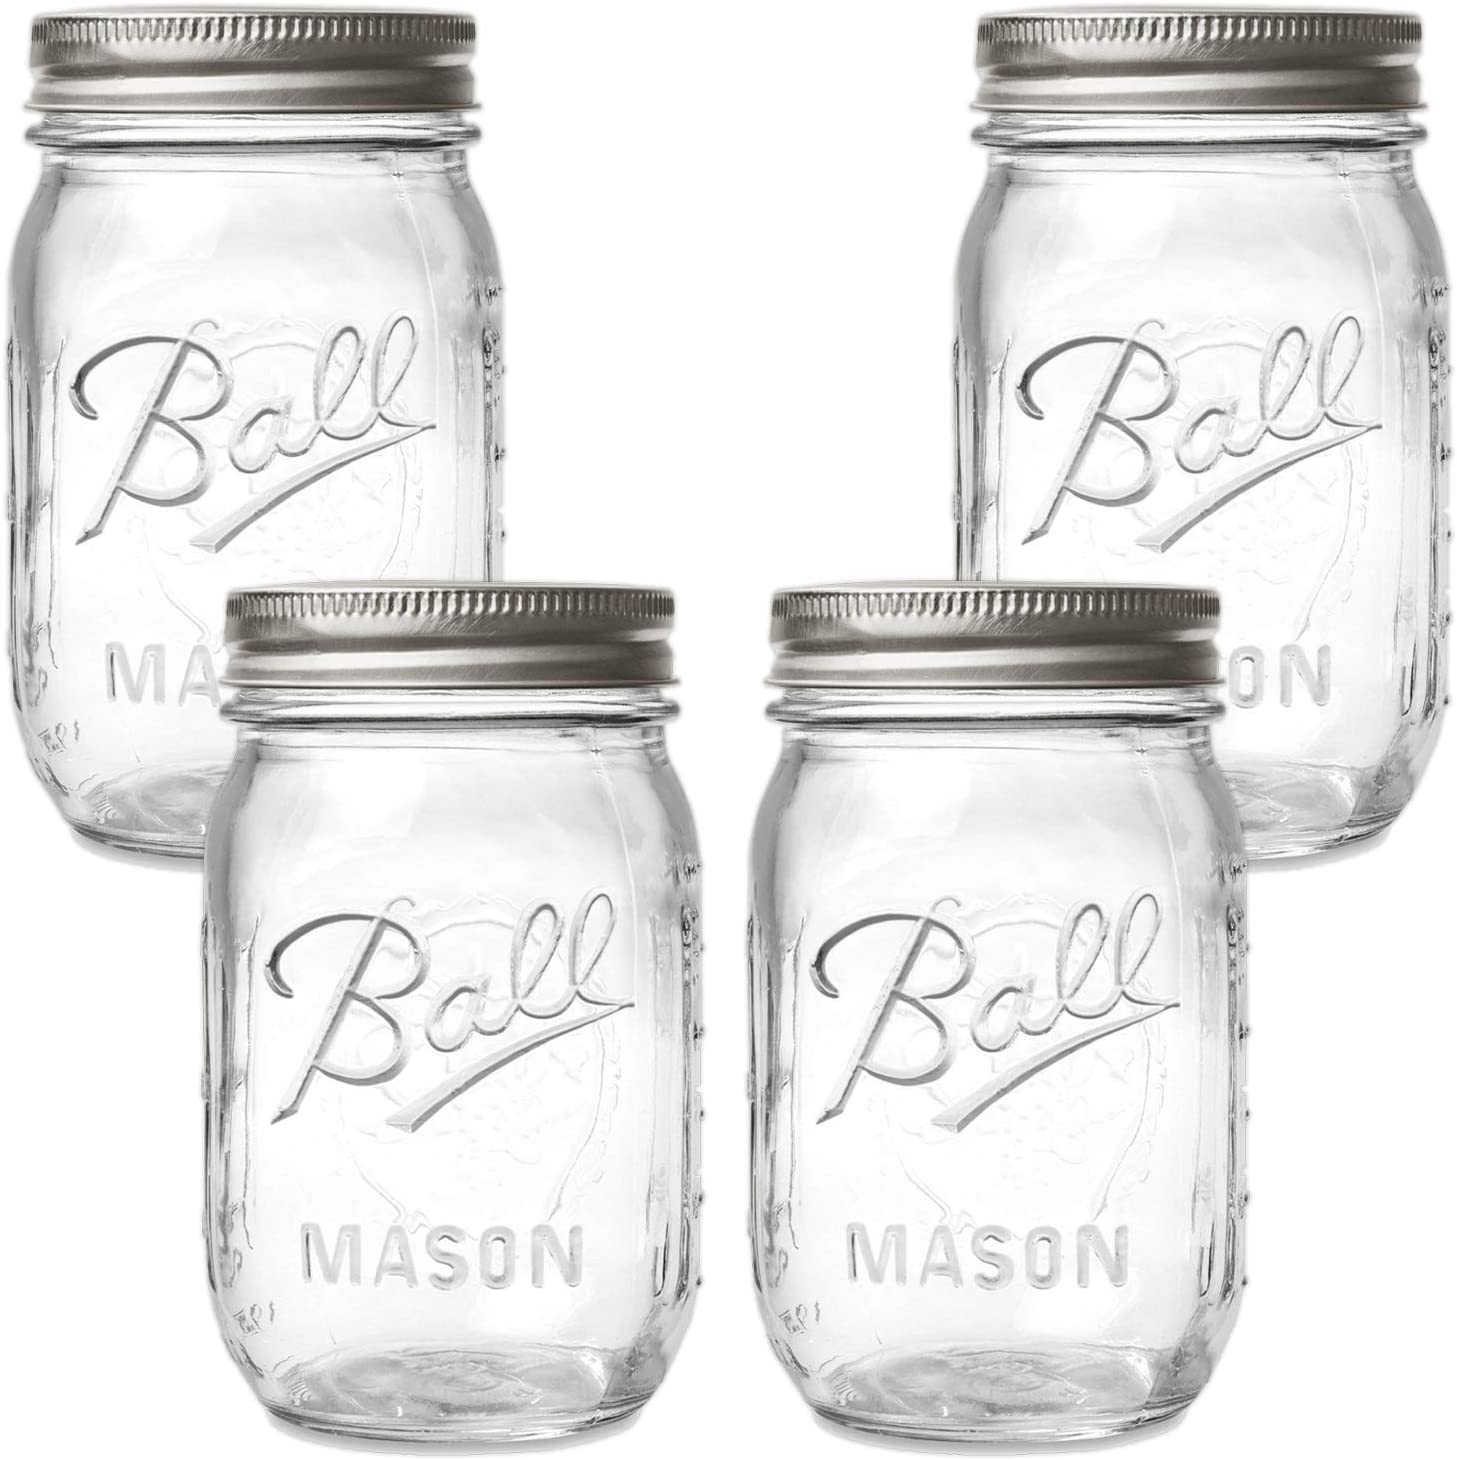 Mason Jar Ounces